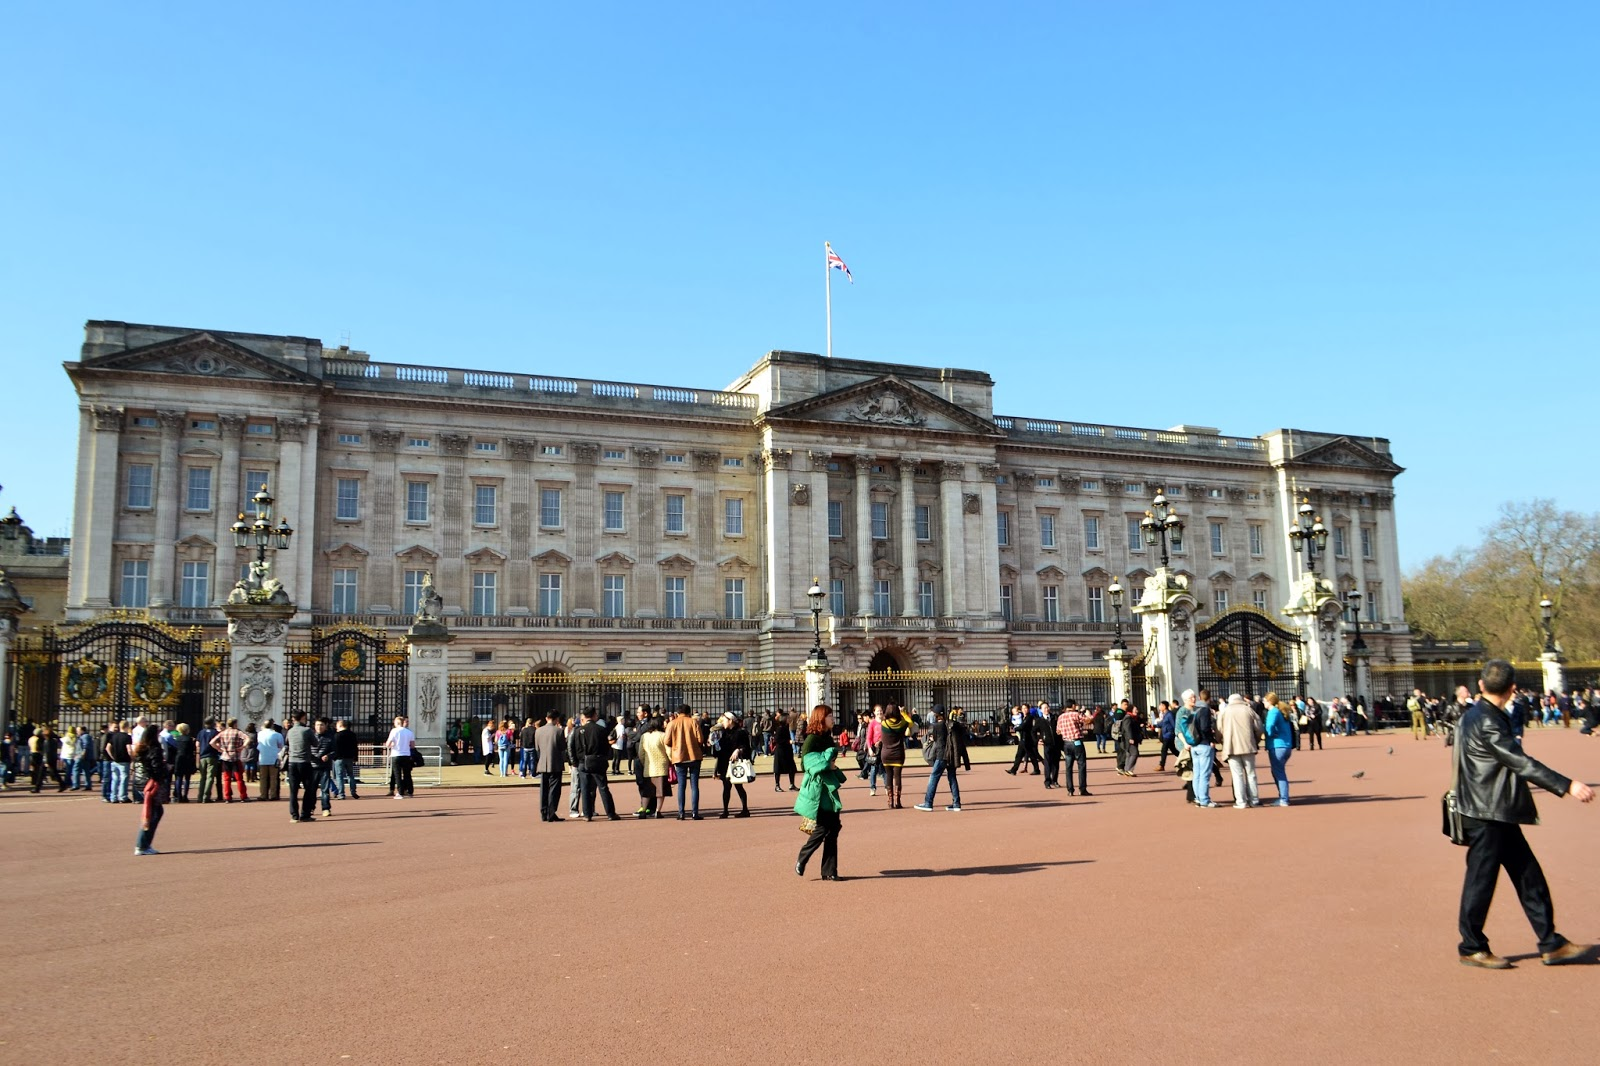 Another view of buckingham palace. the road outside is busy with tourists